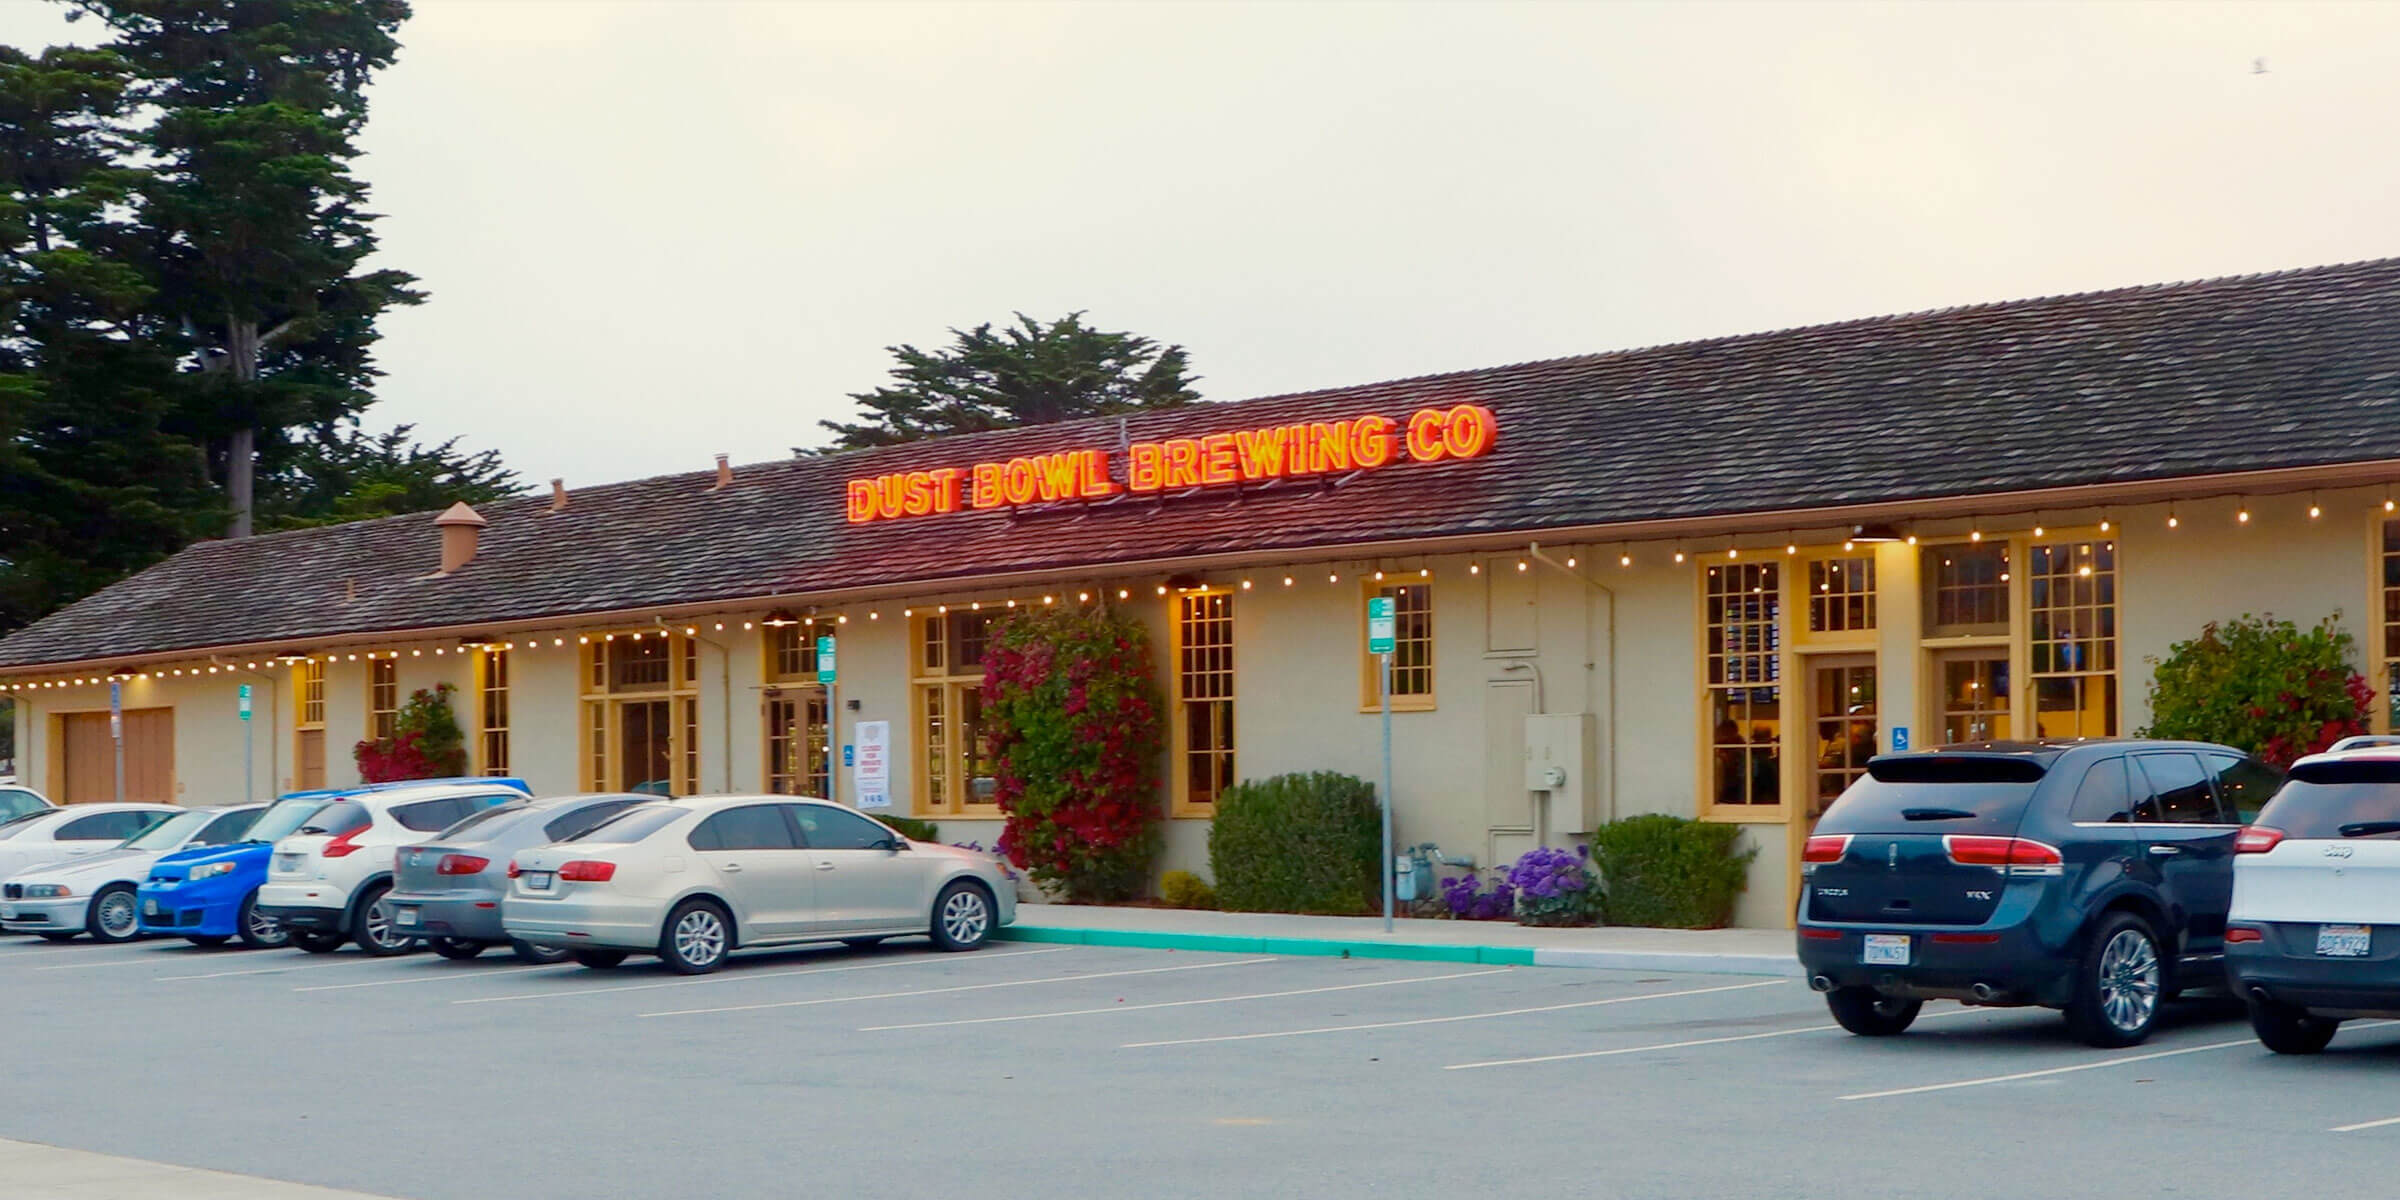 Outside the entrance to the Dust Bowl Brewing Co. taproom in Monterey, California